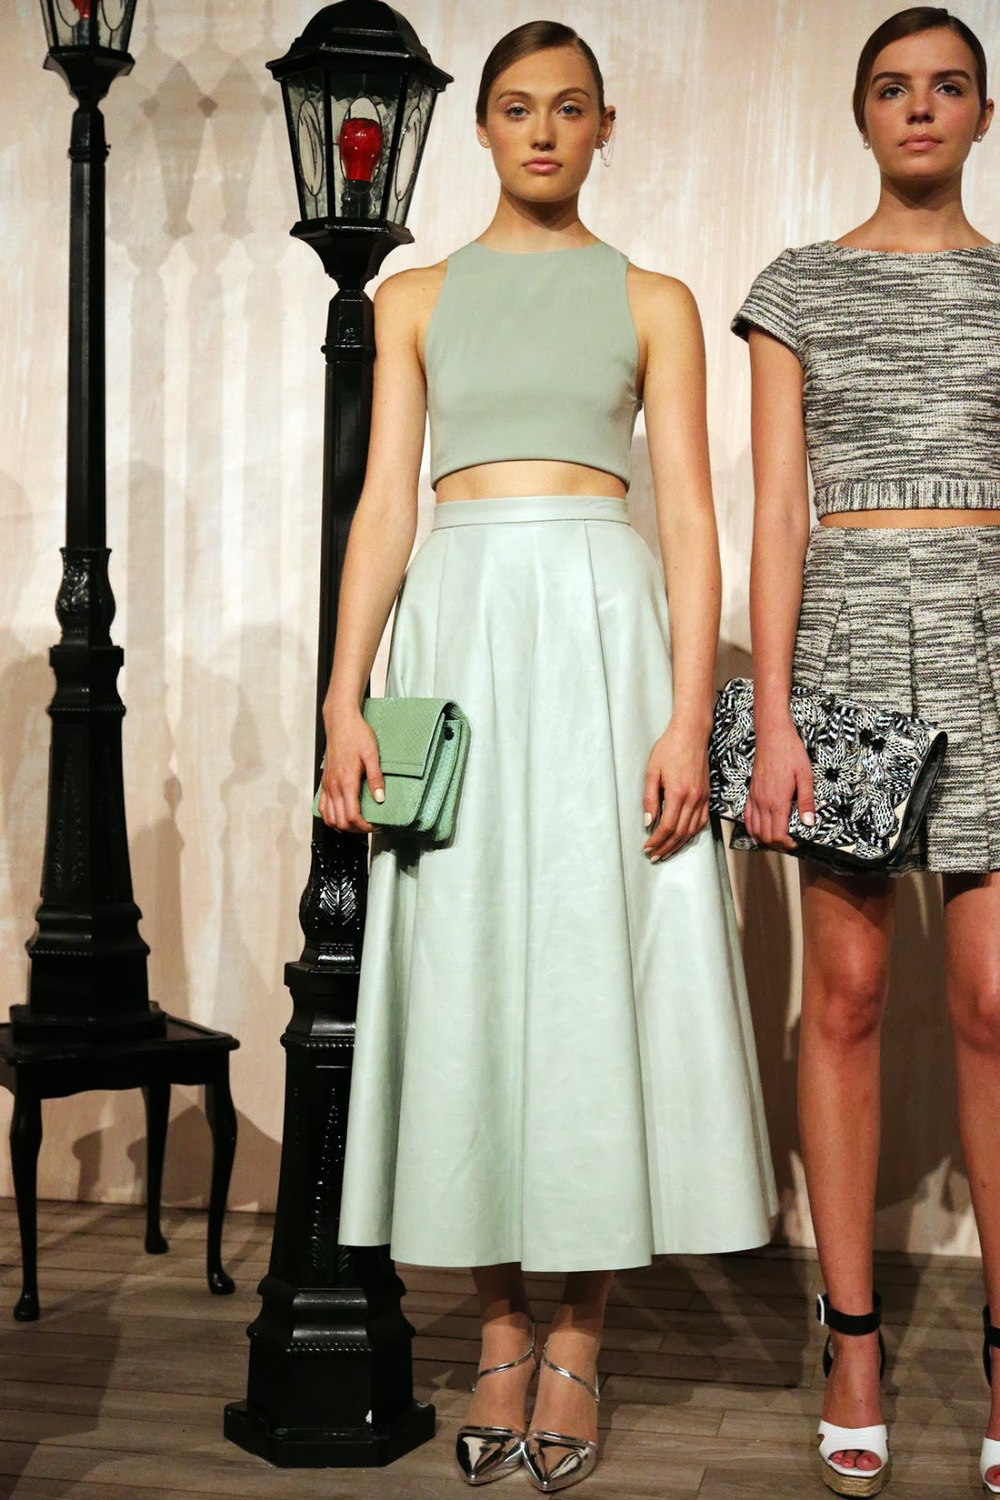 Alice+++Olivia+SS+2014+Collection+-+NYFW+-+Photo+by+Whitney+S.+Williams+-+alaLadywolf+(6).jpg